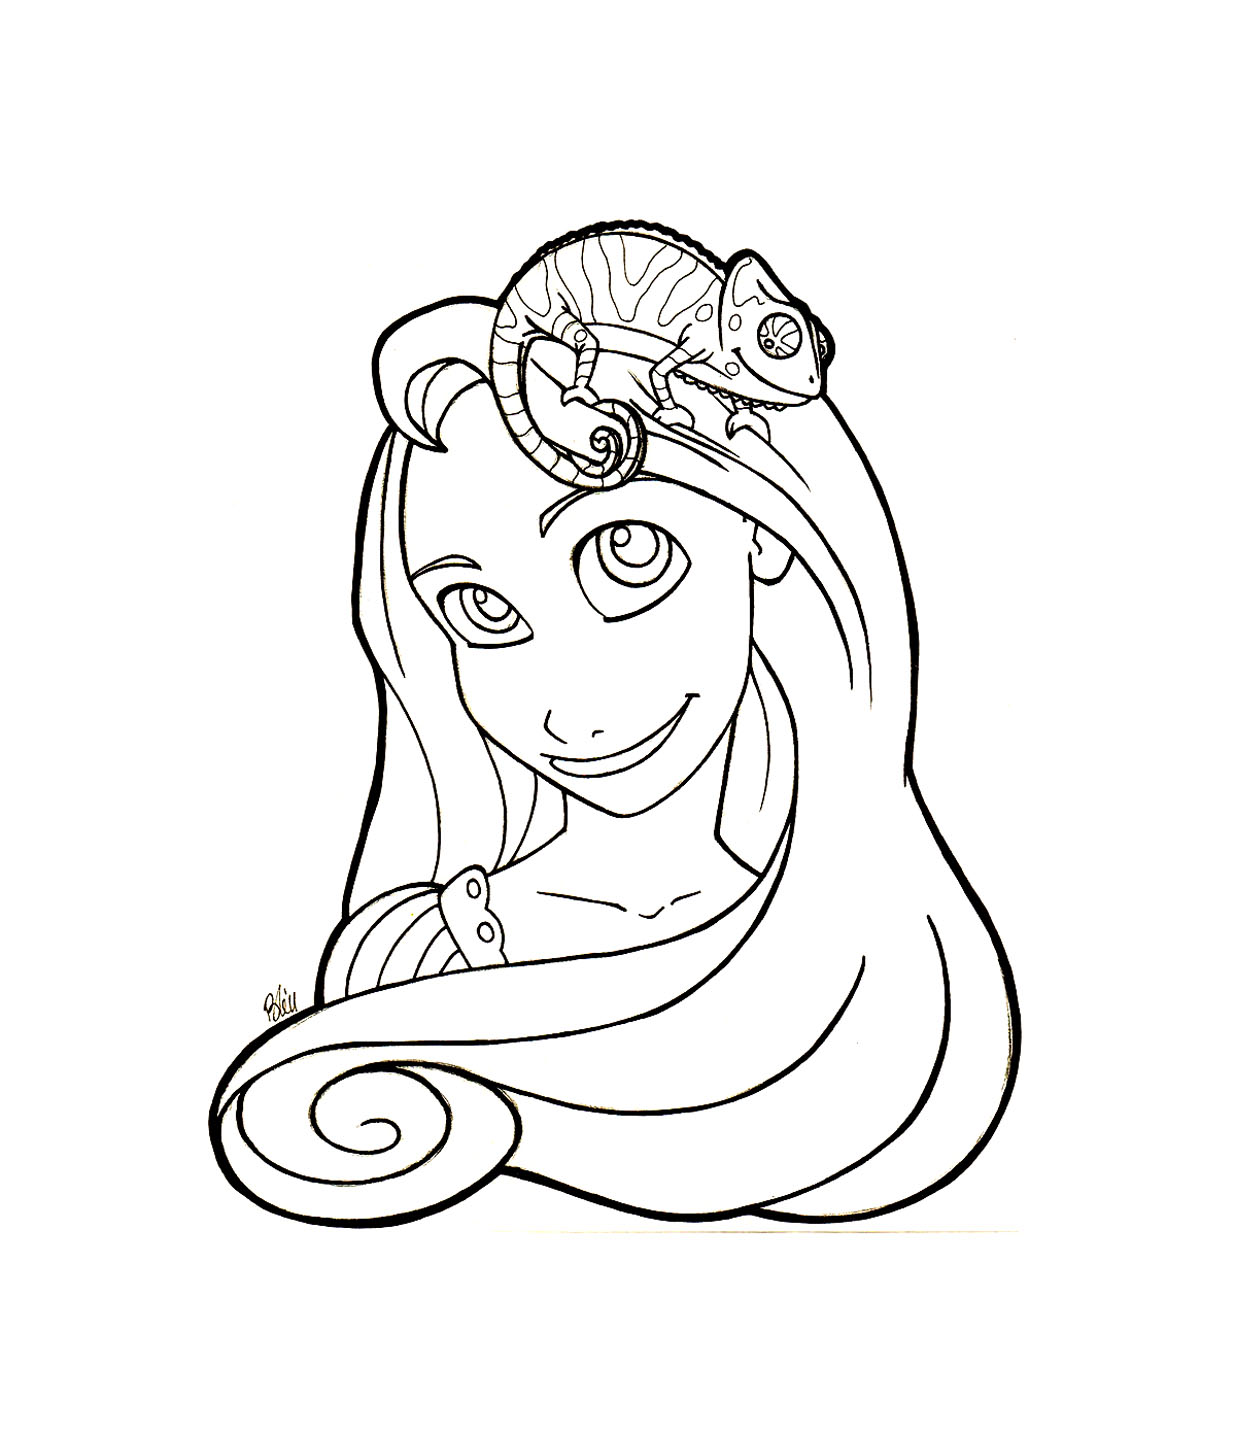 Raiponce pascal coloriage raiponce coloriages pour - Coloriages raiponce ...